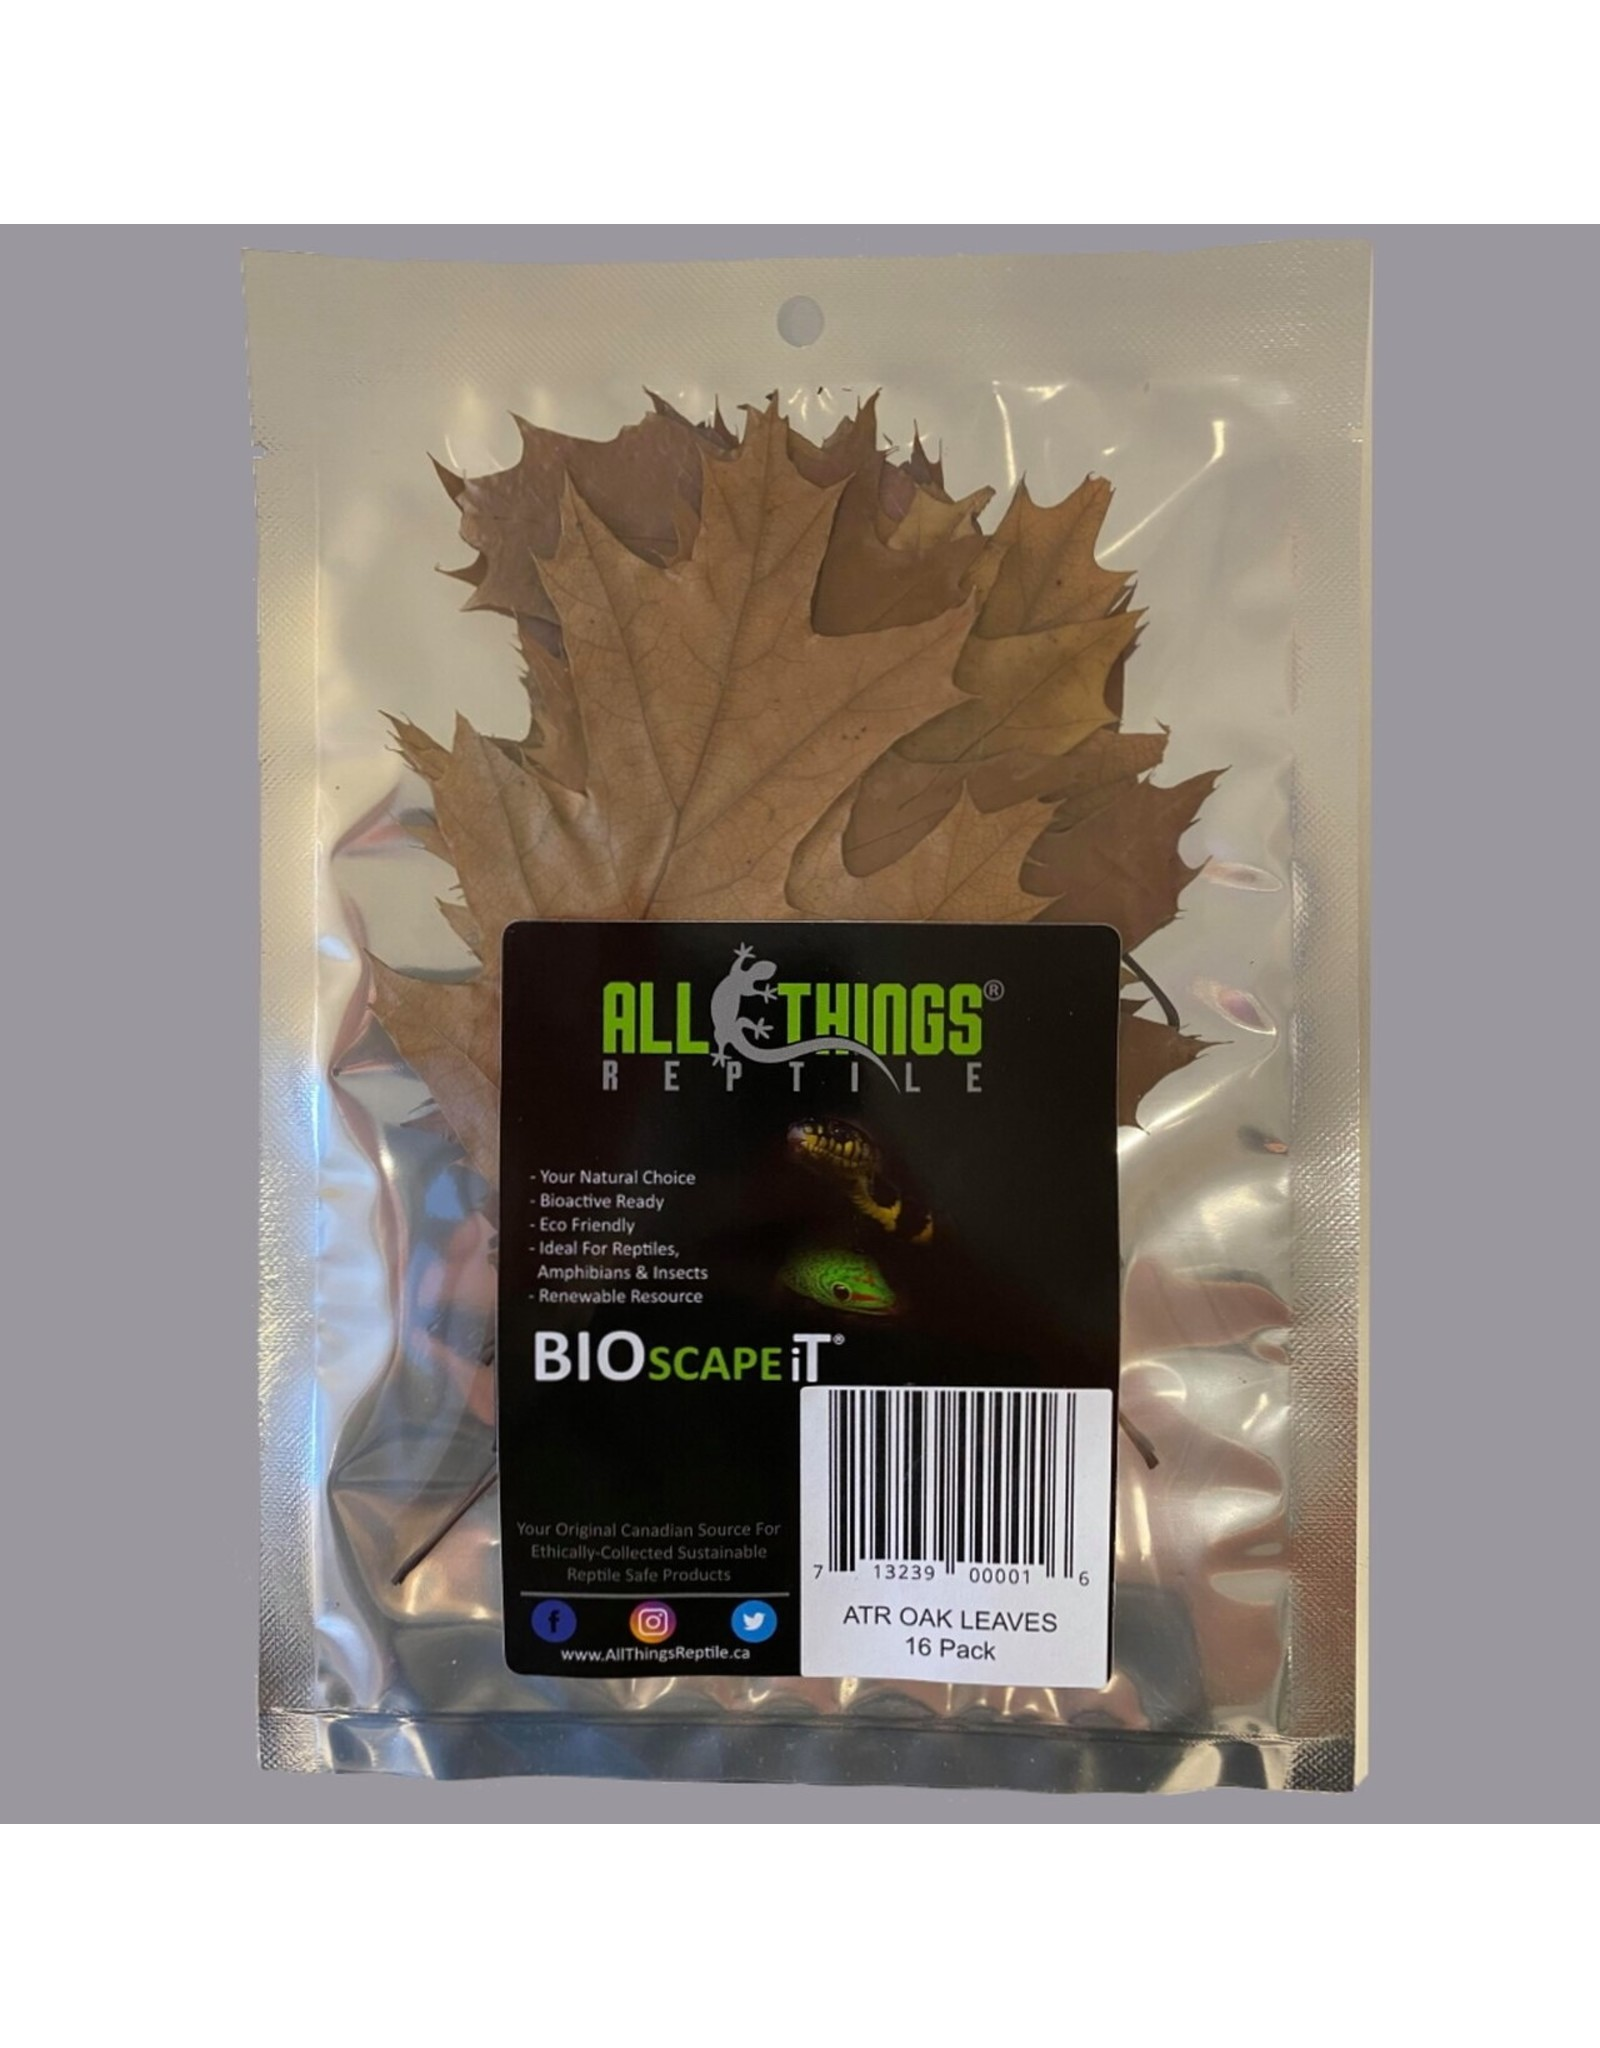 All Things Reptiles ALL THINGS REPTILE Oak Leaf Litter